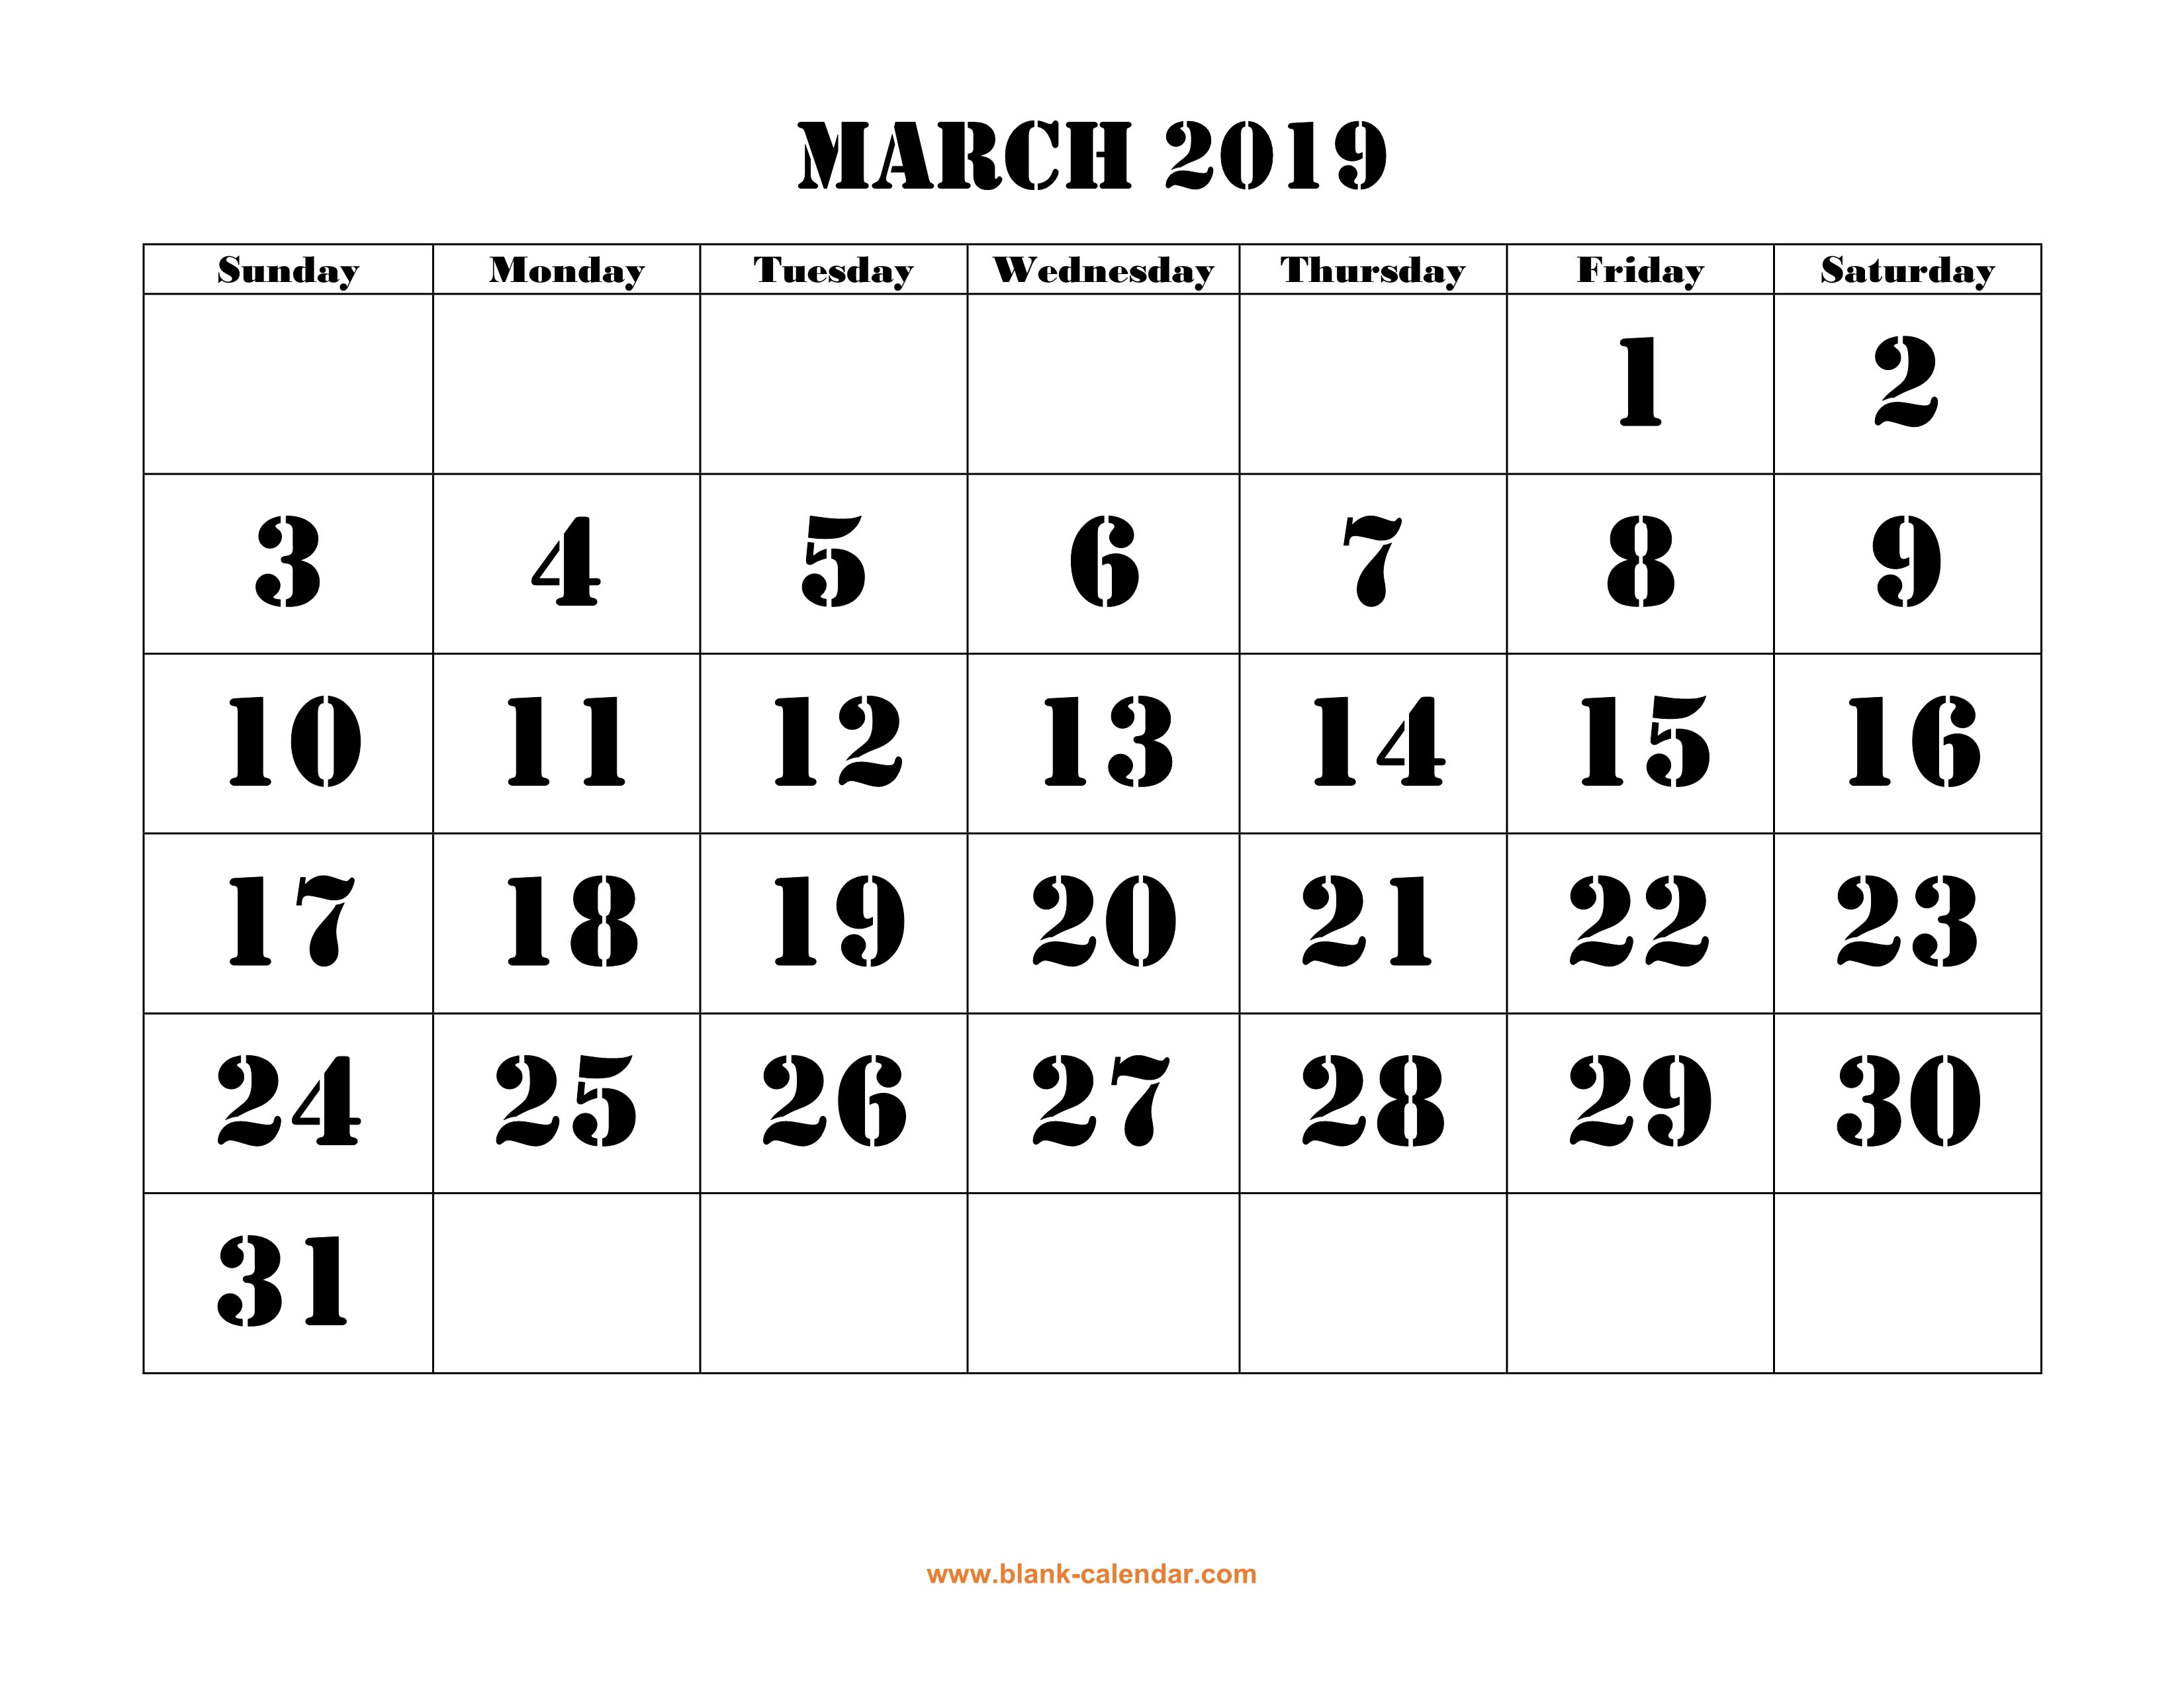 Free Download Printable March 2019 Calendar, Large Font Design March 8 2019 Calendar